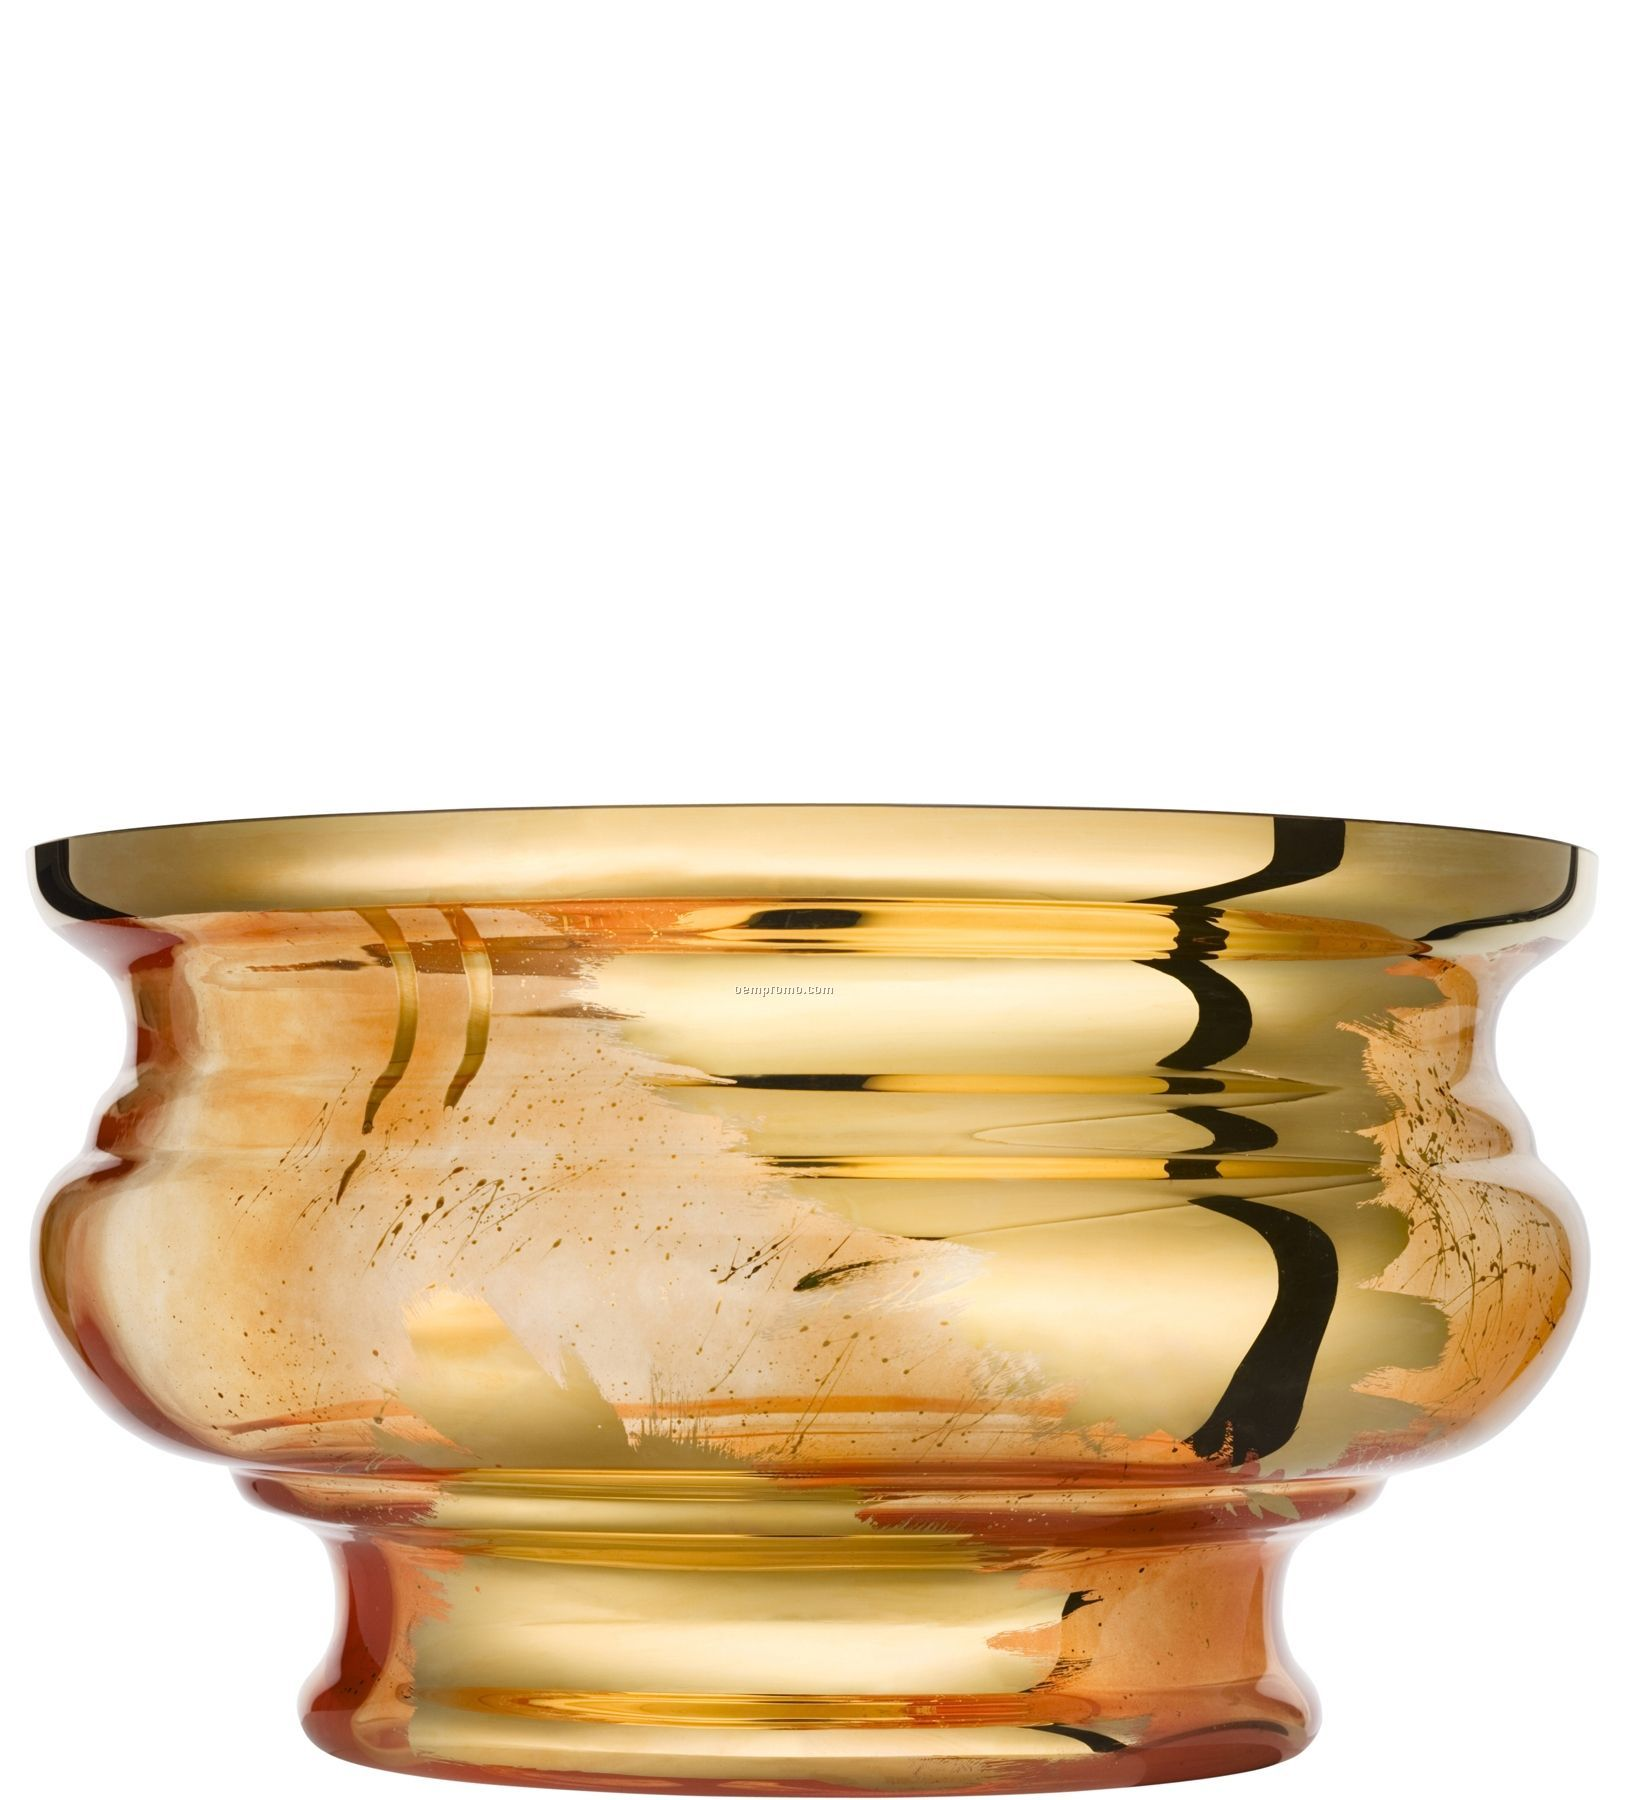 Jackie Hand Painted Glass Bowl By Asa Jungnelius (Orange)